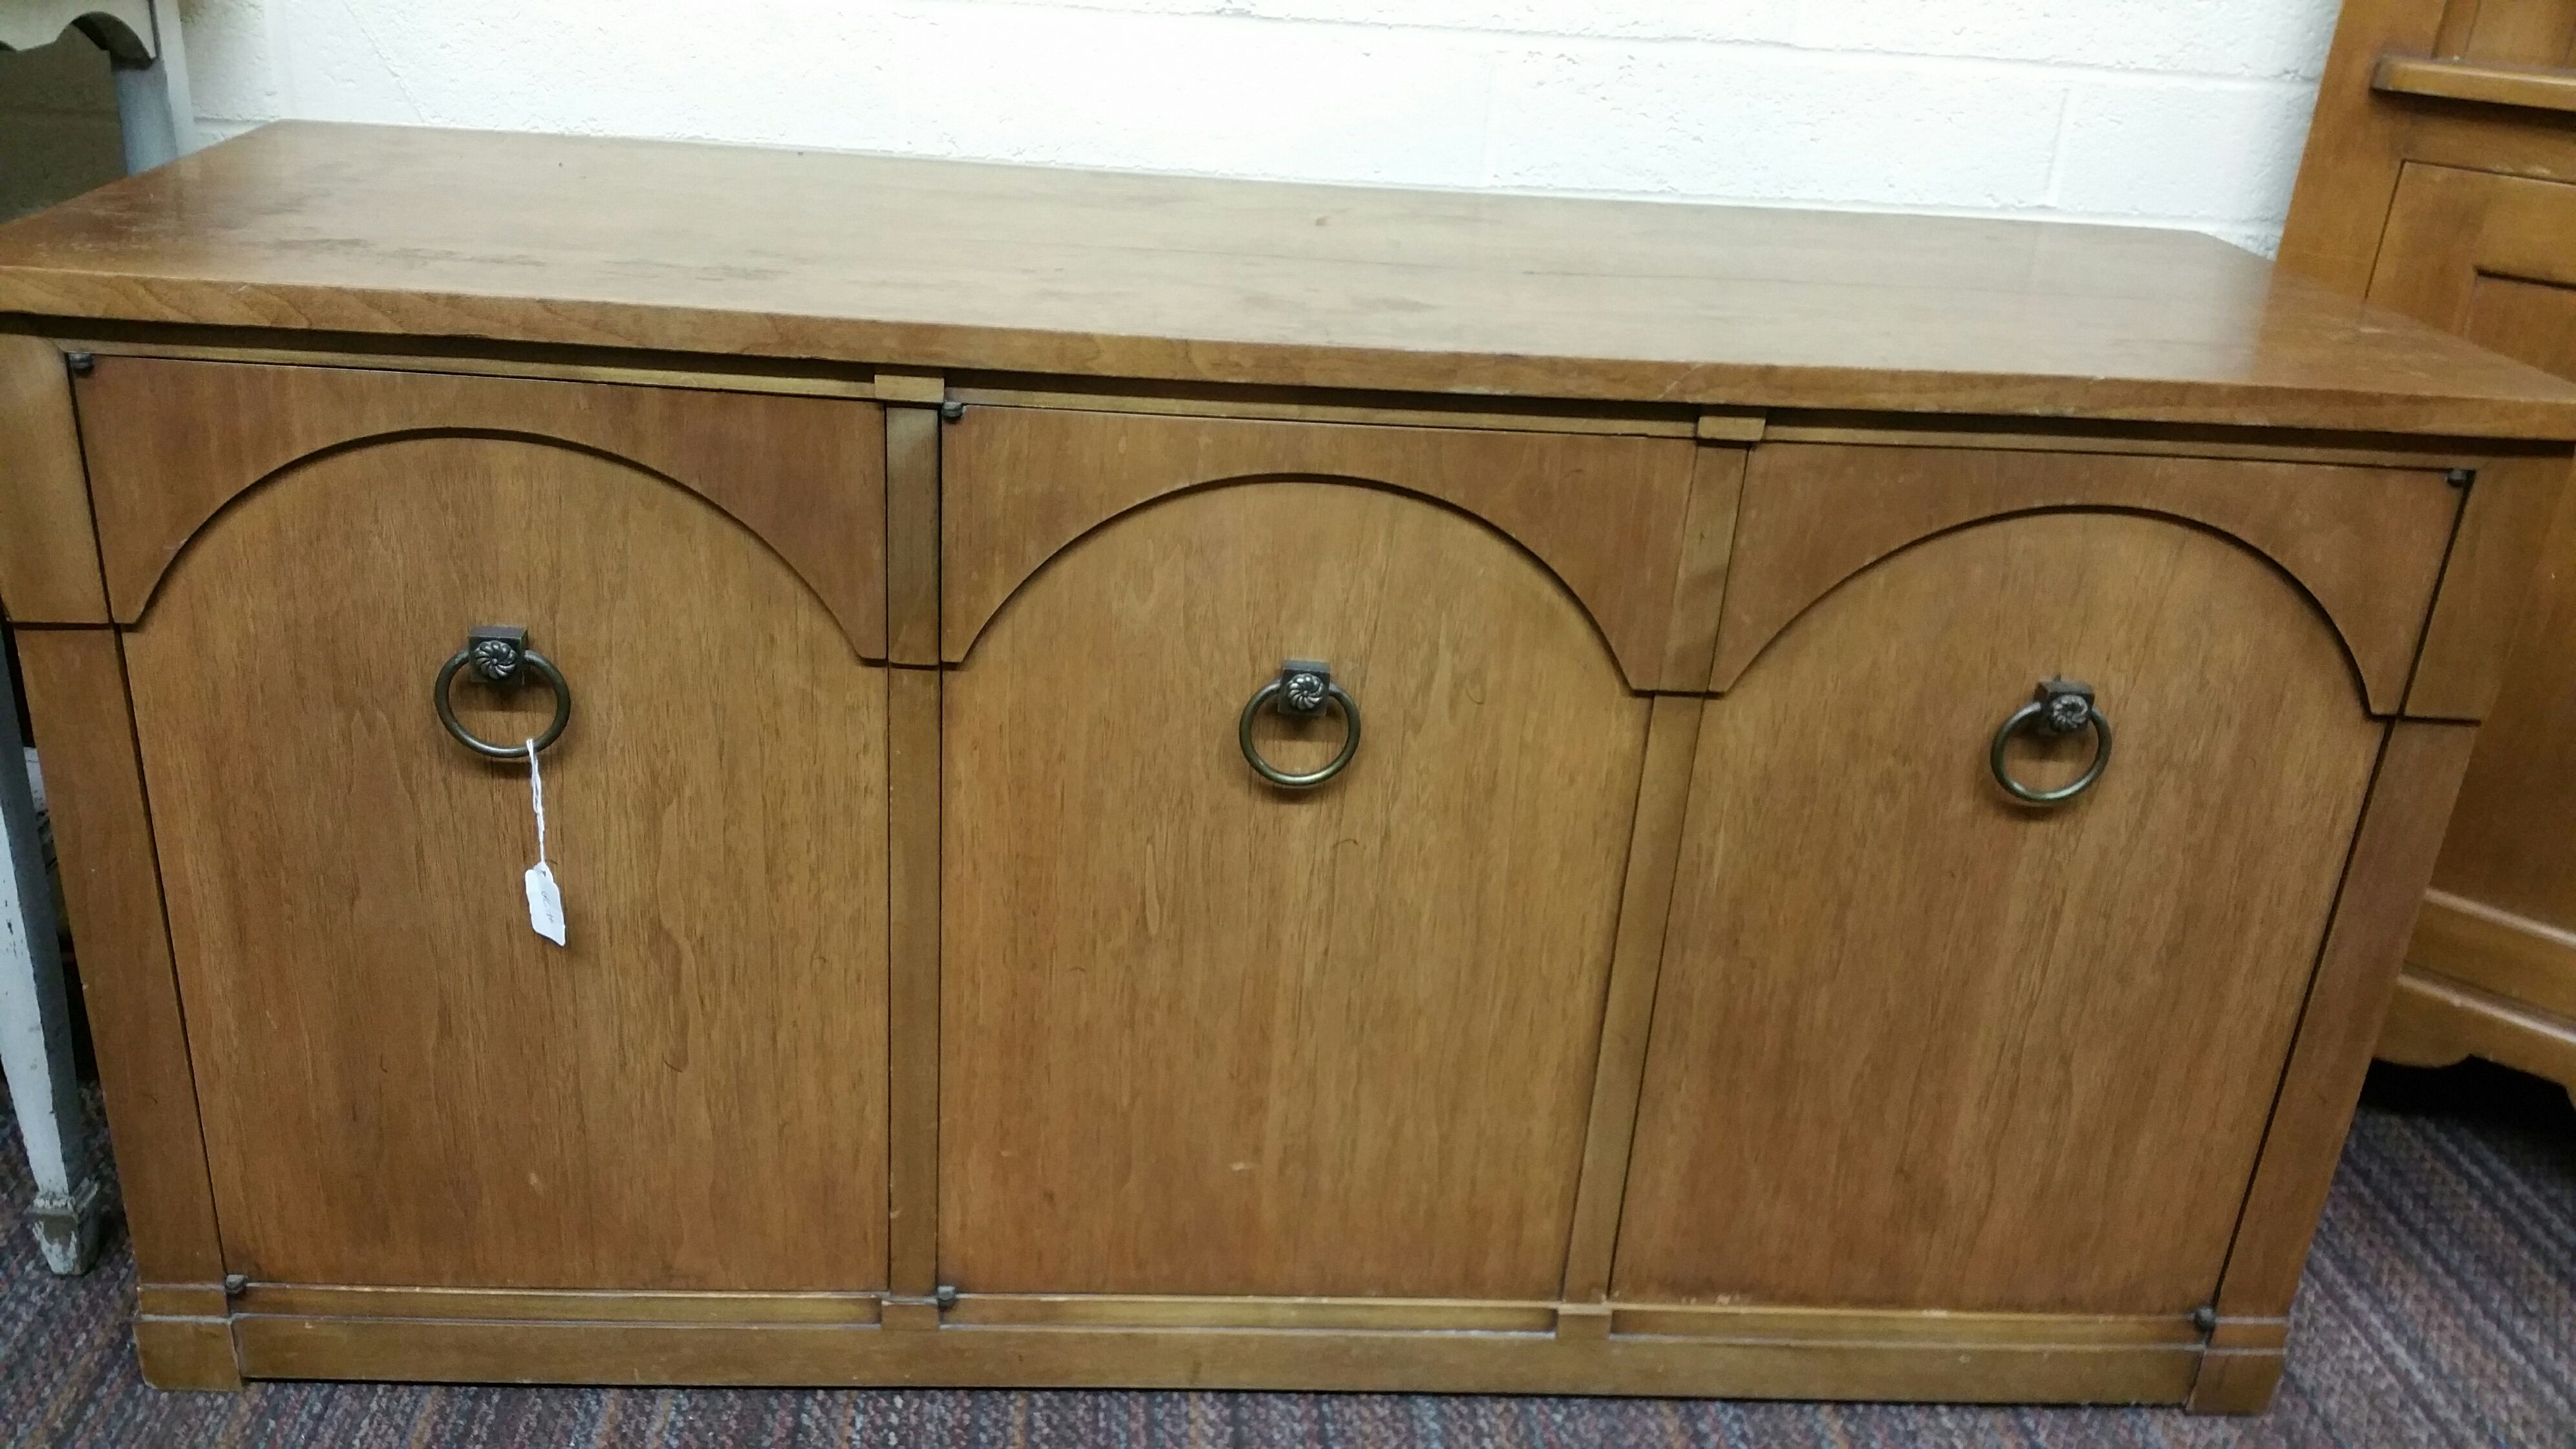 Beautiful Antique Credenza with Ring Pull Handles, right door has 3 pull out drawers. Perfect for storing your best dinnerware and flatware. Worth $400, selling for $275.